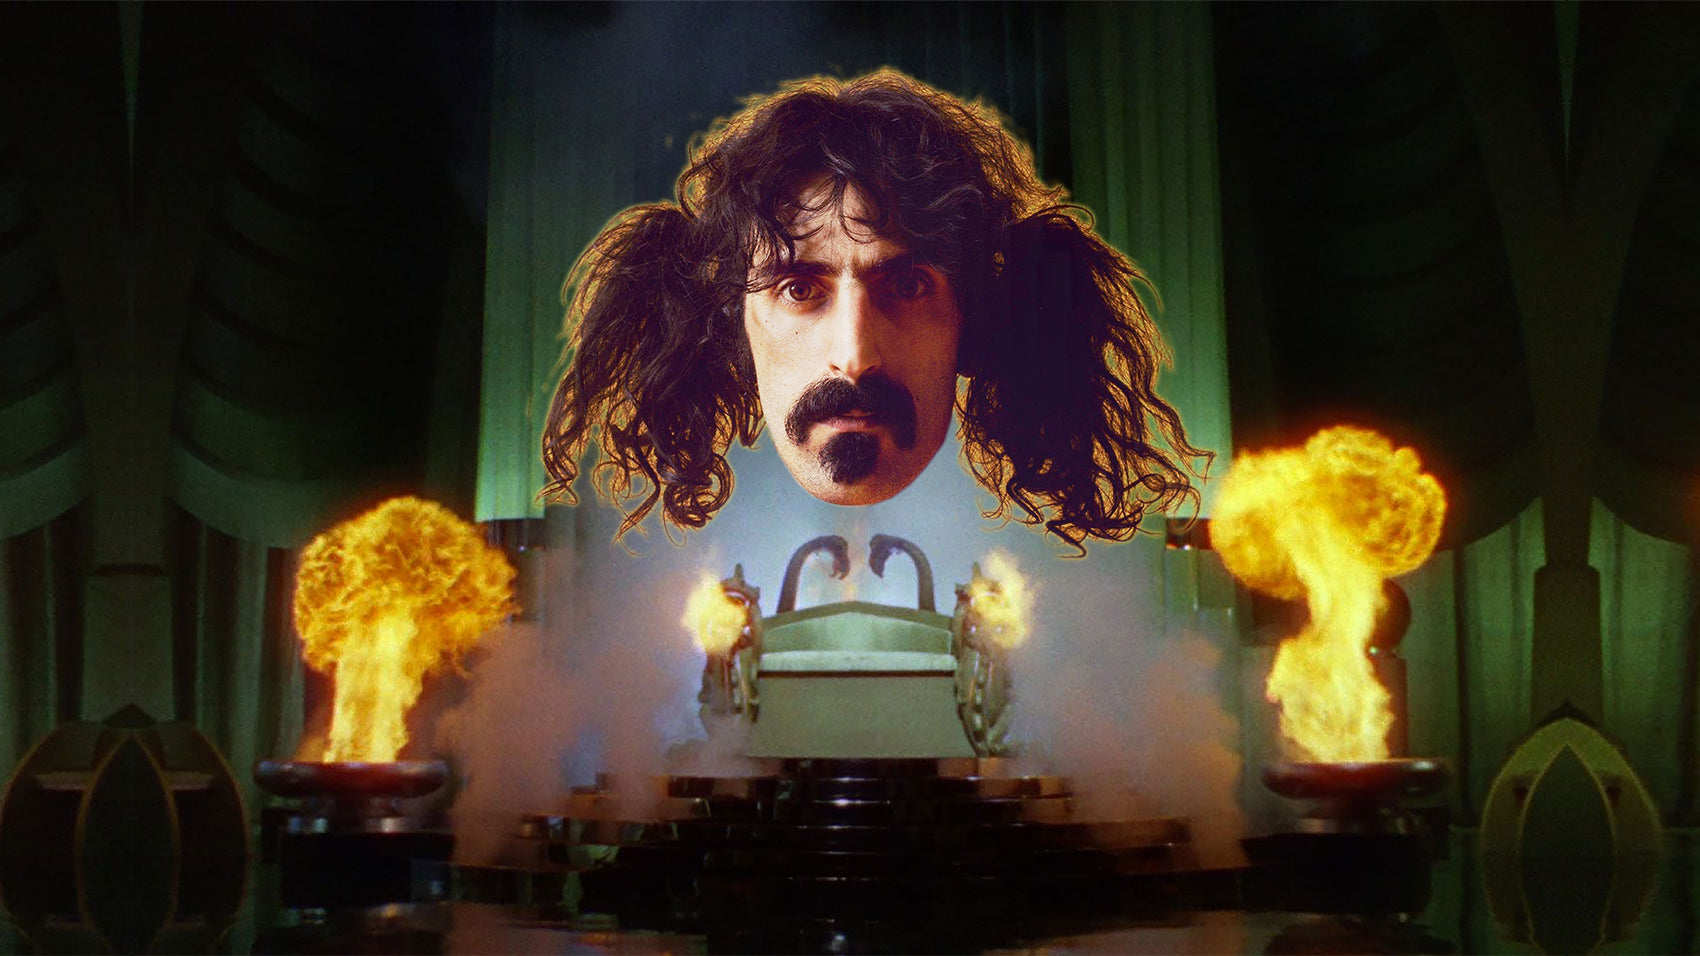 Frank Zappa Image Courtesy of RIOT FEST